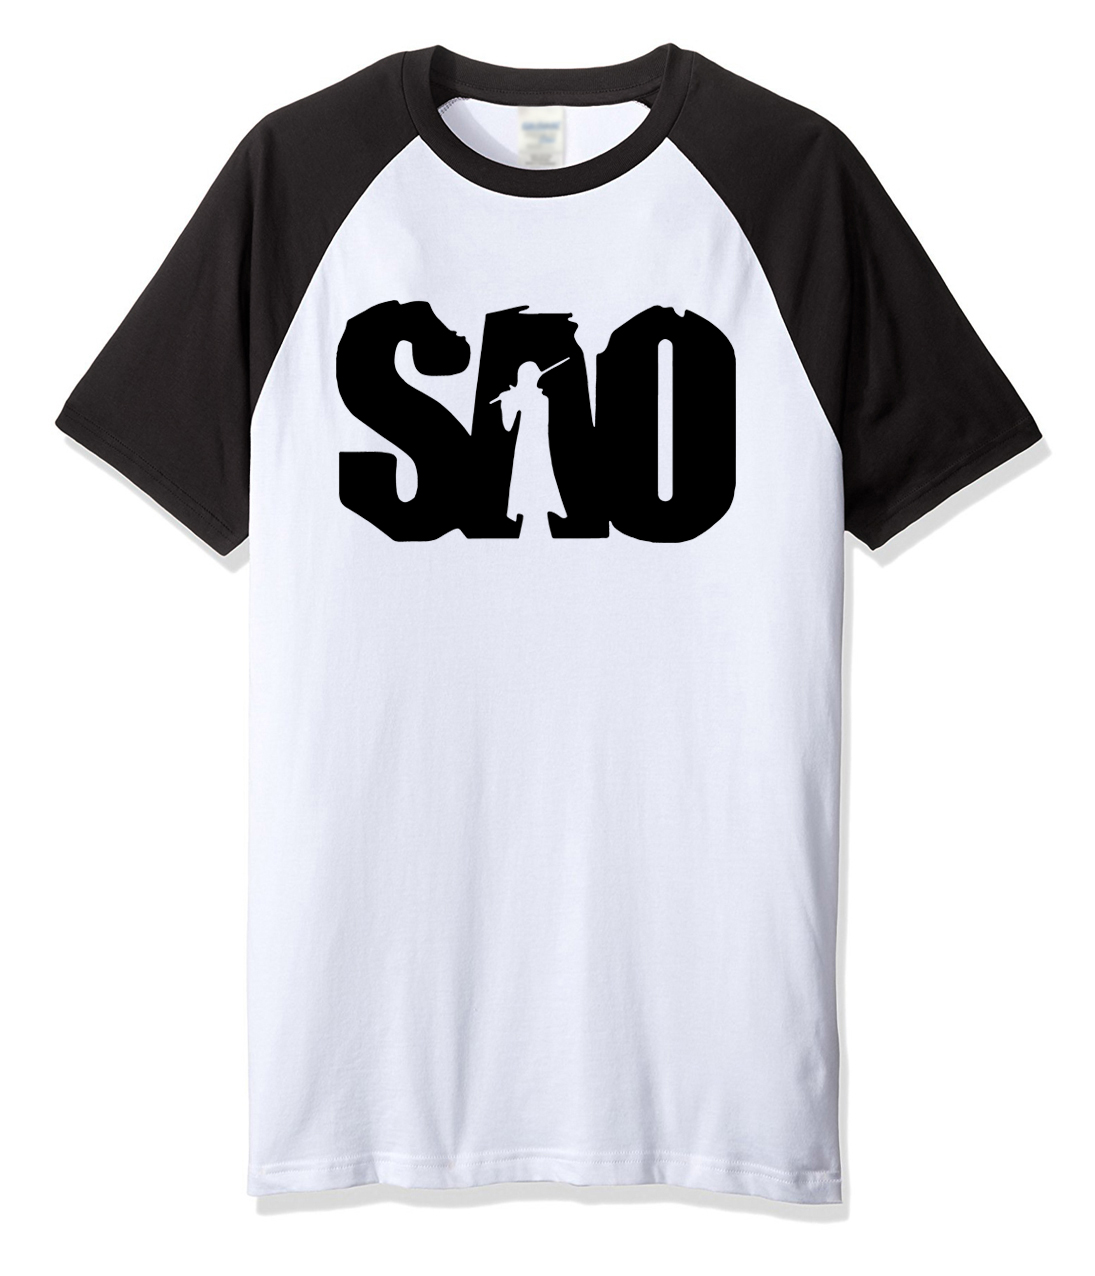 2019 men's T-shirts SAO anime printed summer 100% cotton fashion casual t shirt for men homme brand clothing top kpop T-shirt